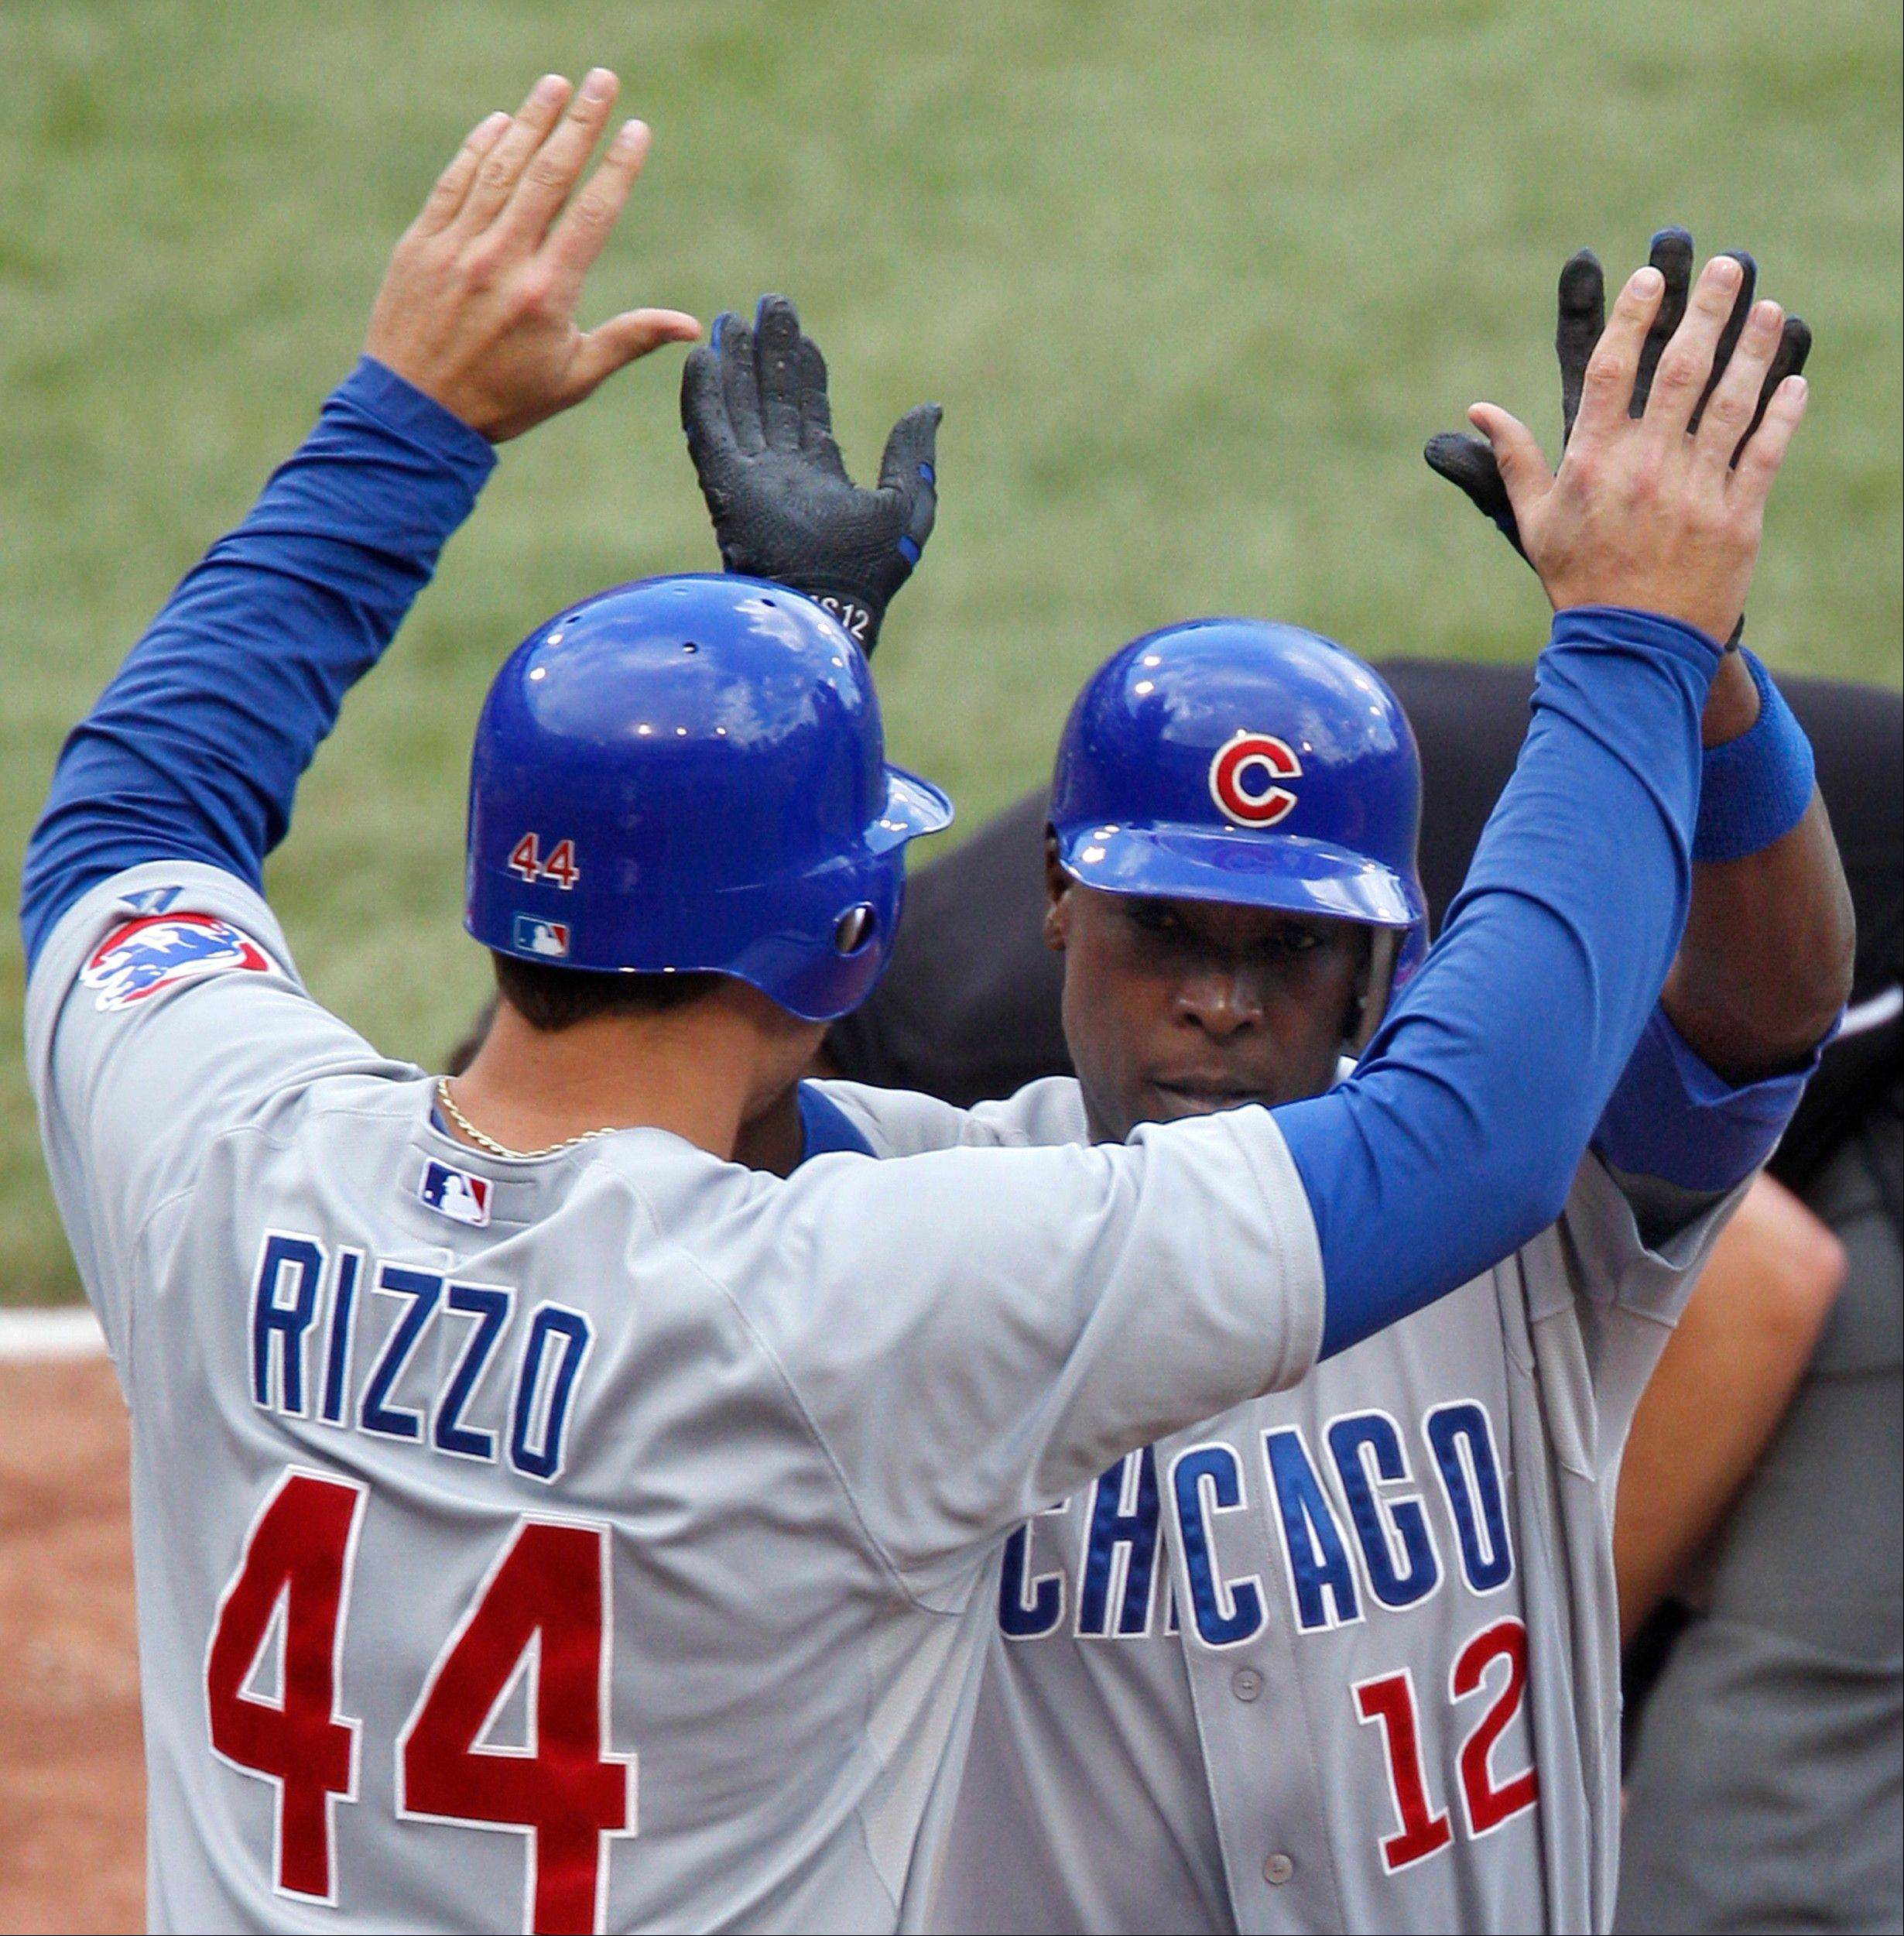 Cubs outfielder Alfonso Soriano and Anthony Rizzo celebrate after Soriano drove in them both with a two-run home run in the eighth inning Sunday at PNC Park.